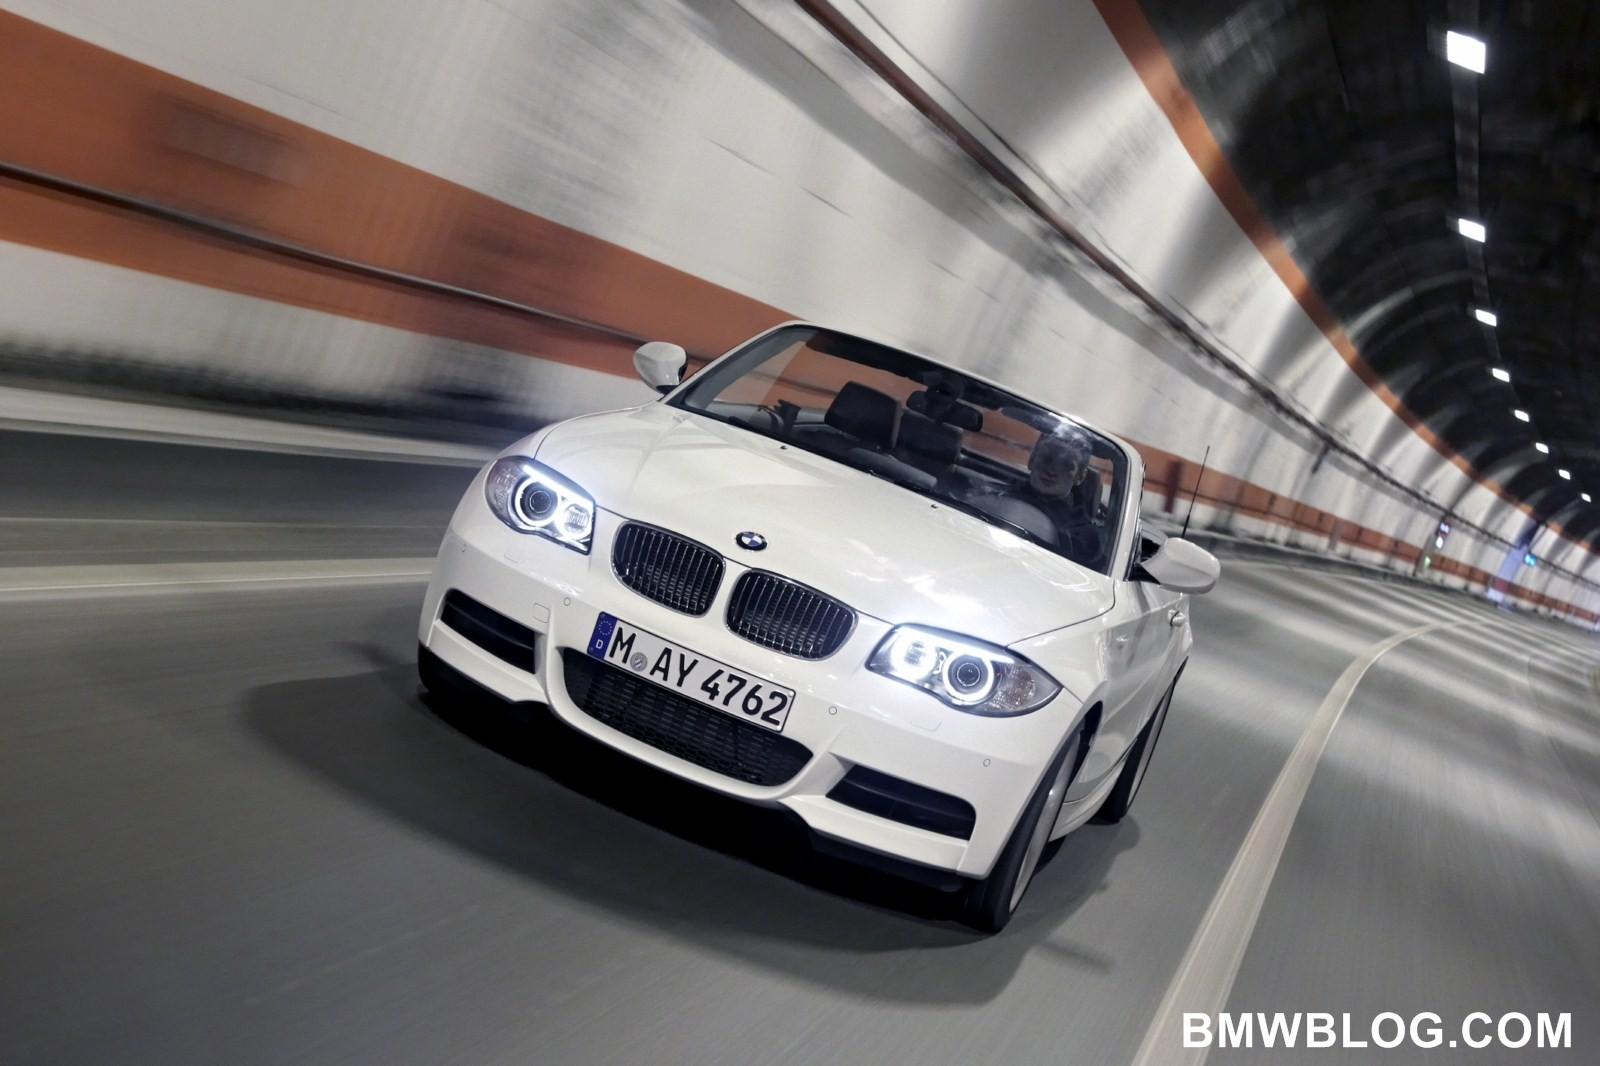 Scintillating 2012 BMW 1 BMW Series Coupe Images - Best Image Engine ...